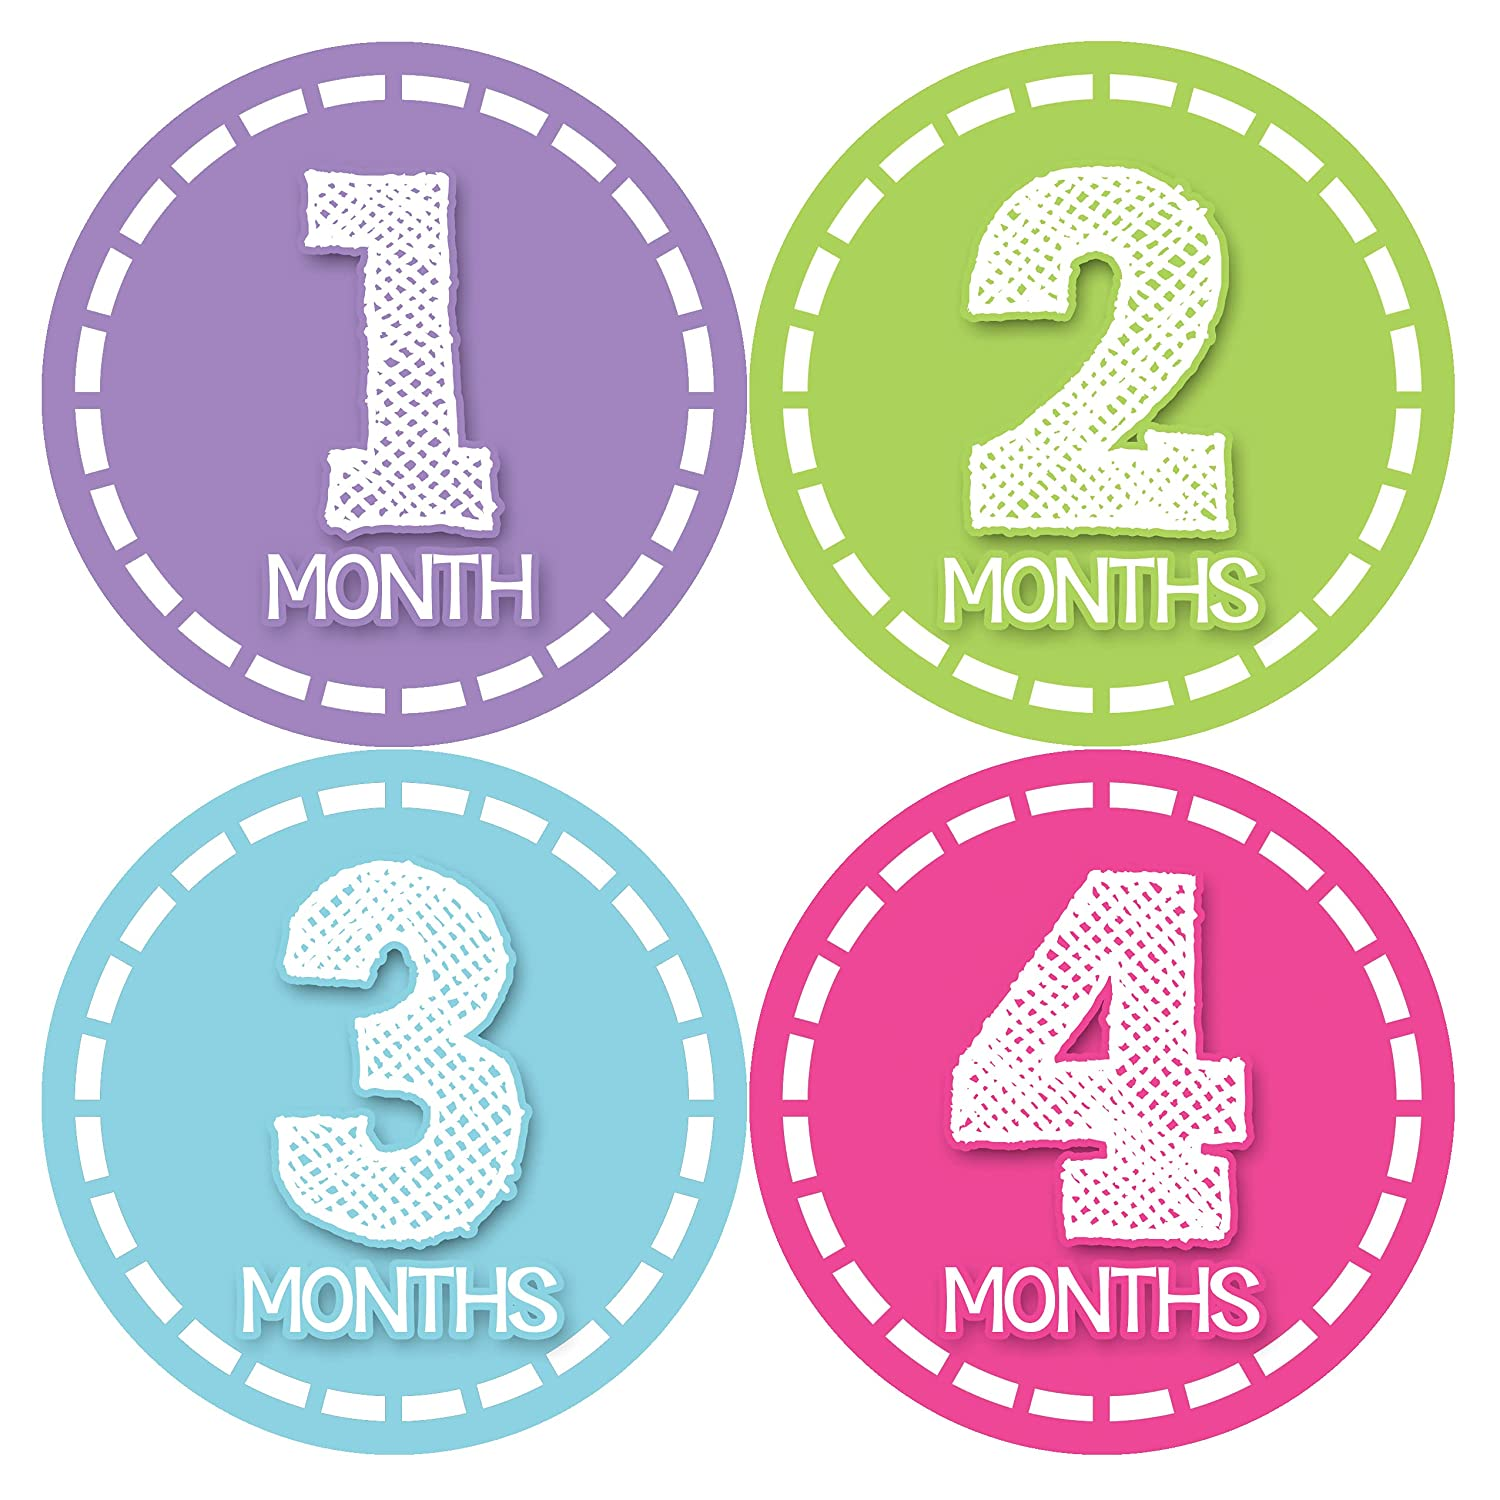 Baby Monthly Stickers | Baby Milestone Stickers | Newborn Stickers| Month Stickers for Baby Girl | Baby Girl Stickers | Newborn Monthly Milestone Stickers (Style 376)